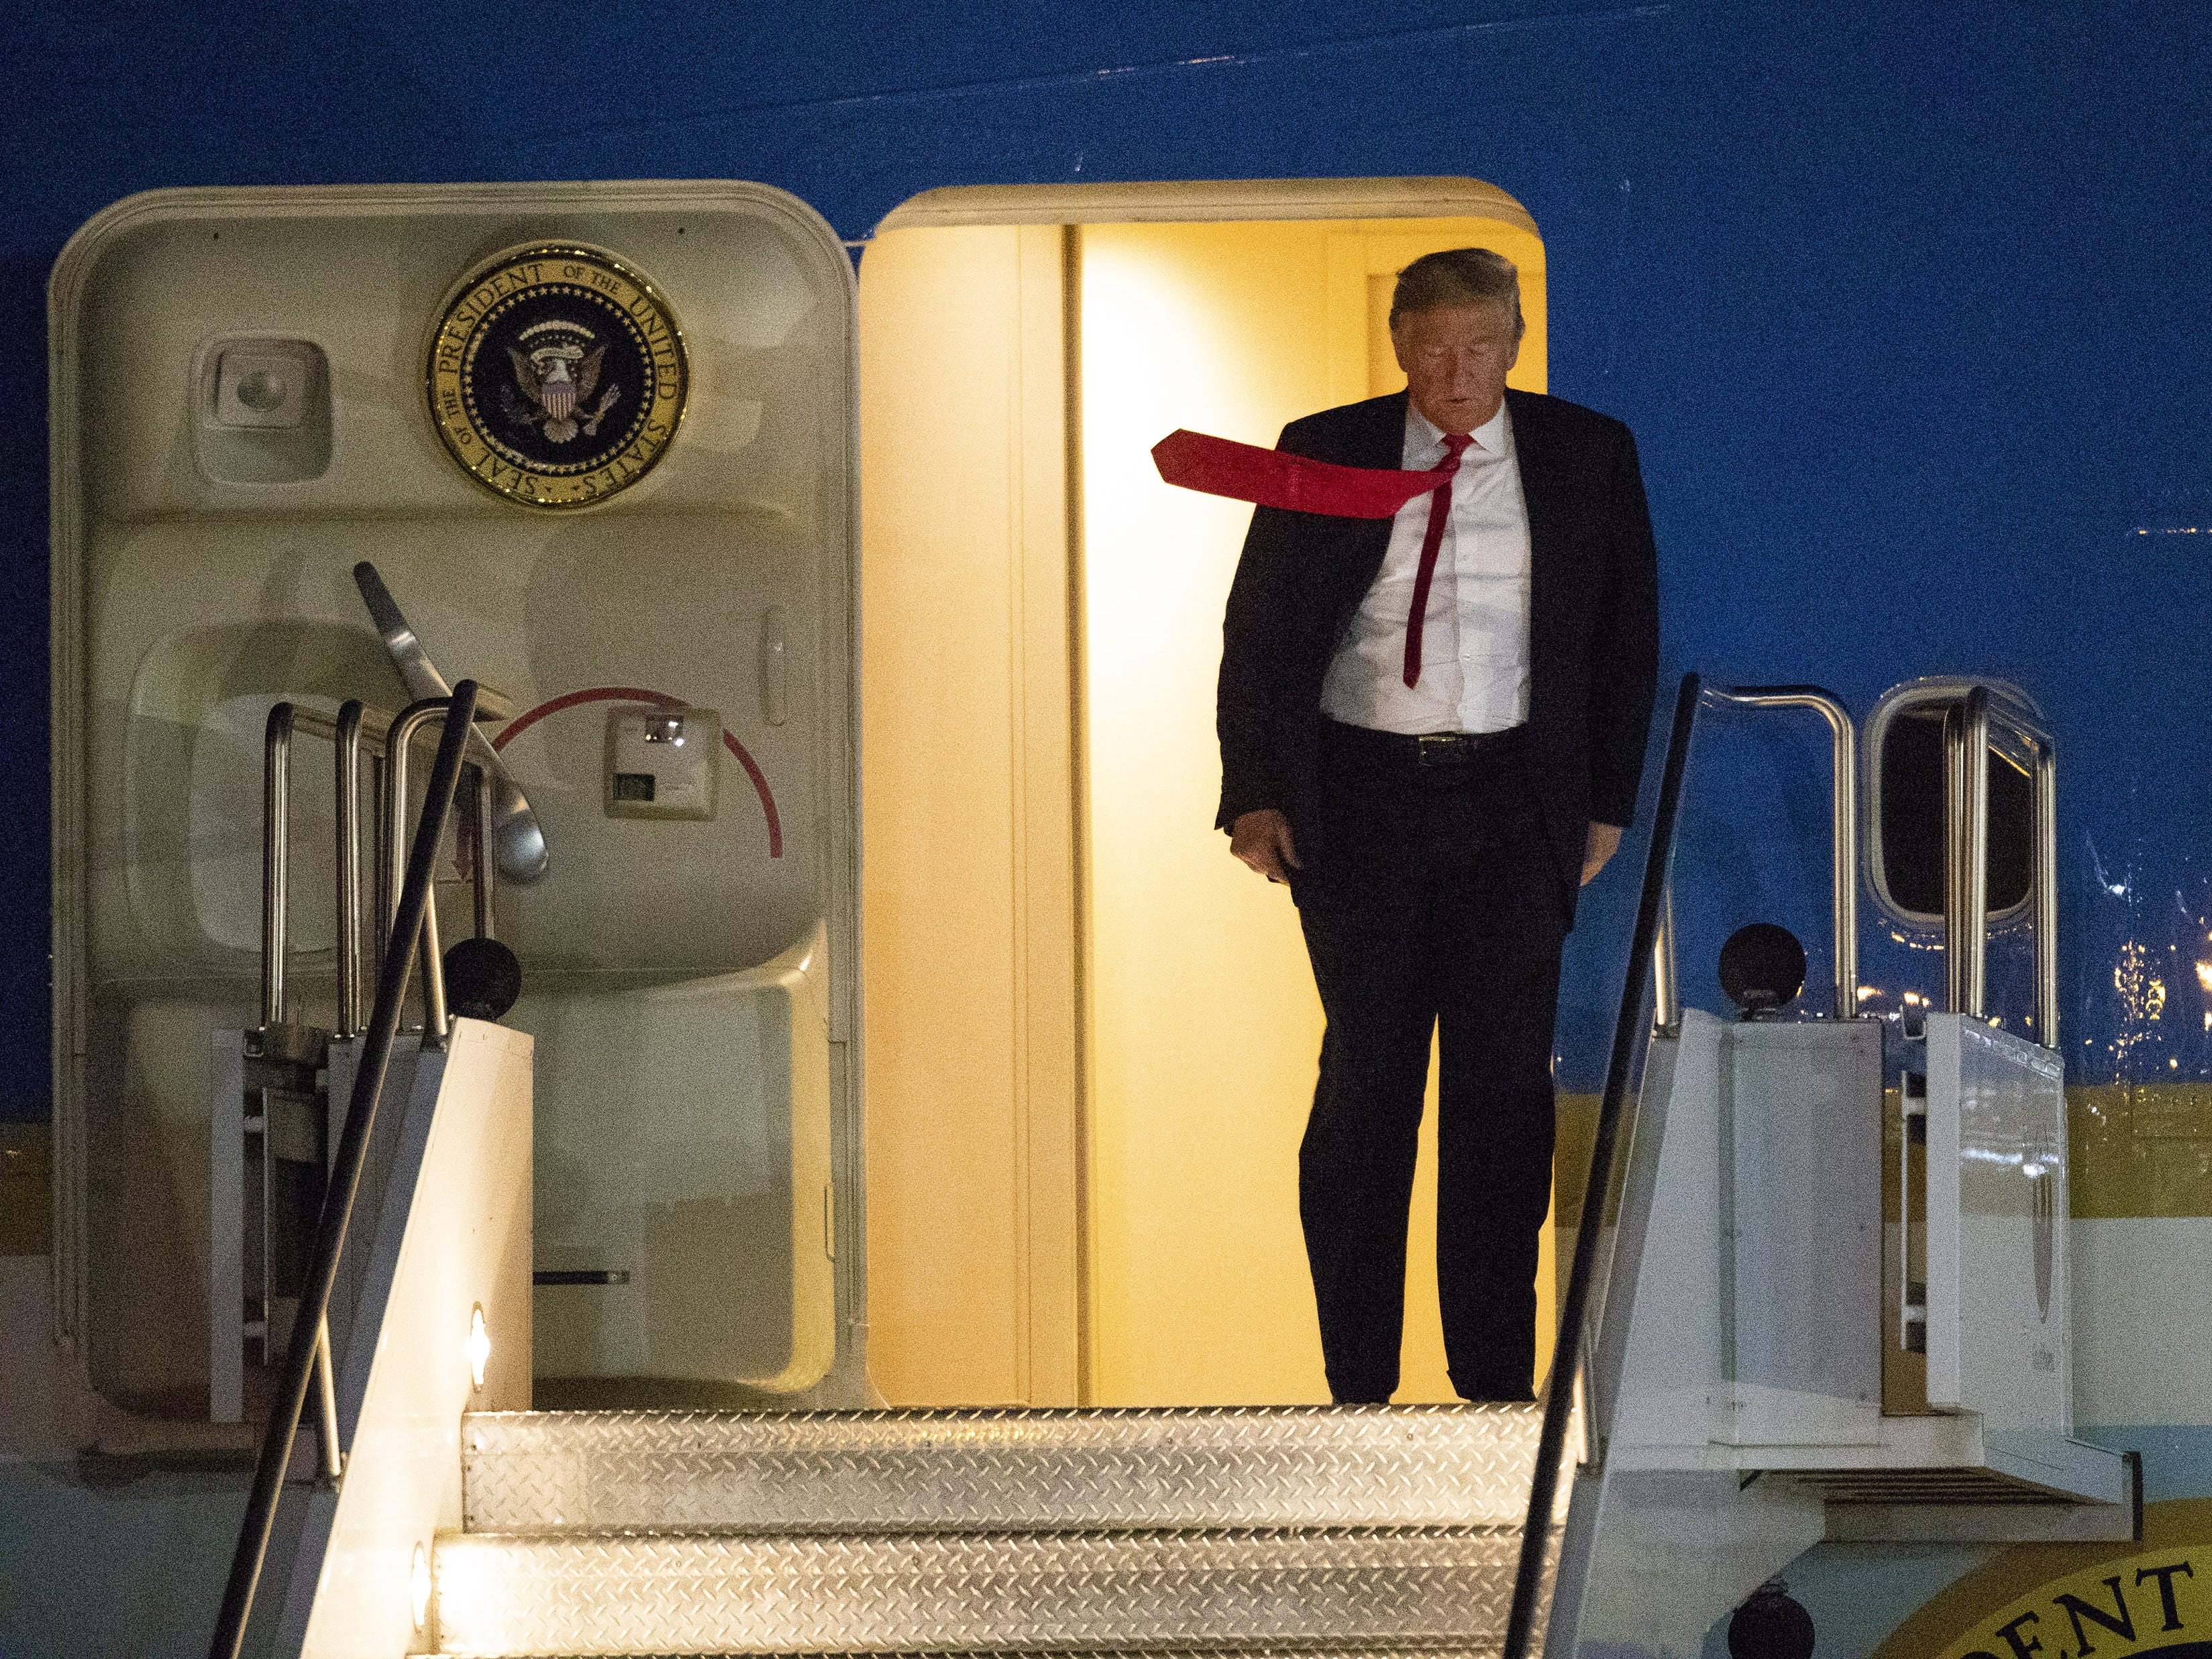 President Trump walks off Air Force One after arriving at Phoenix Sky Harbor Airport on Oct. 18, 2018.